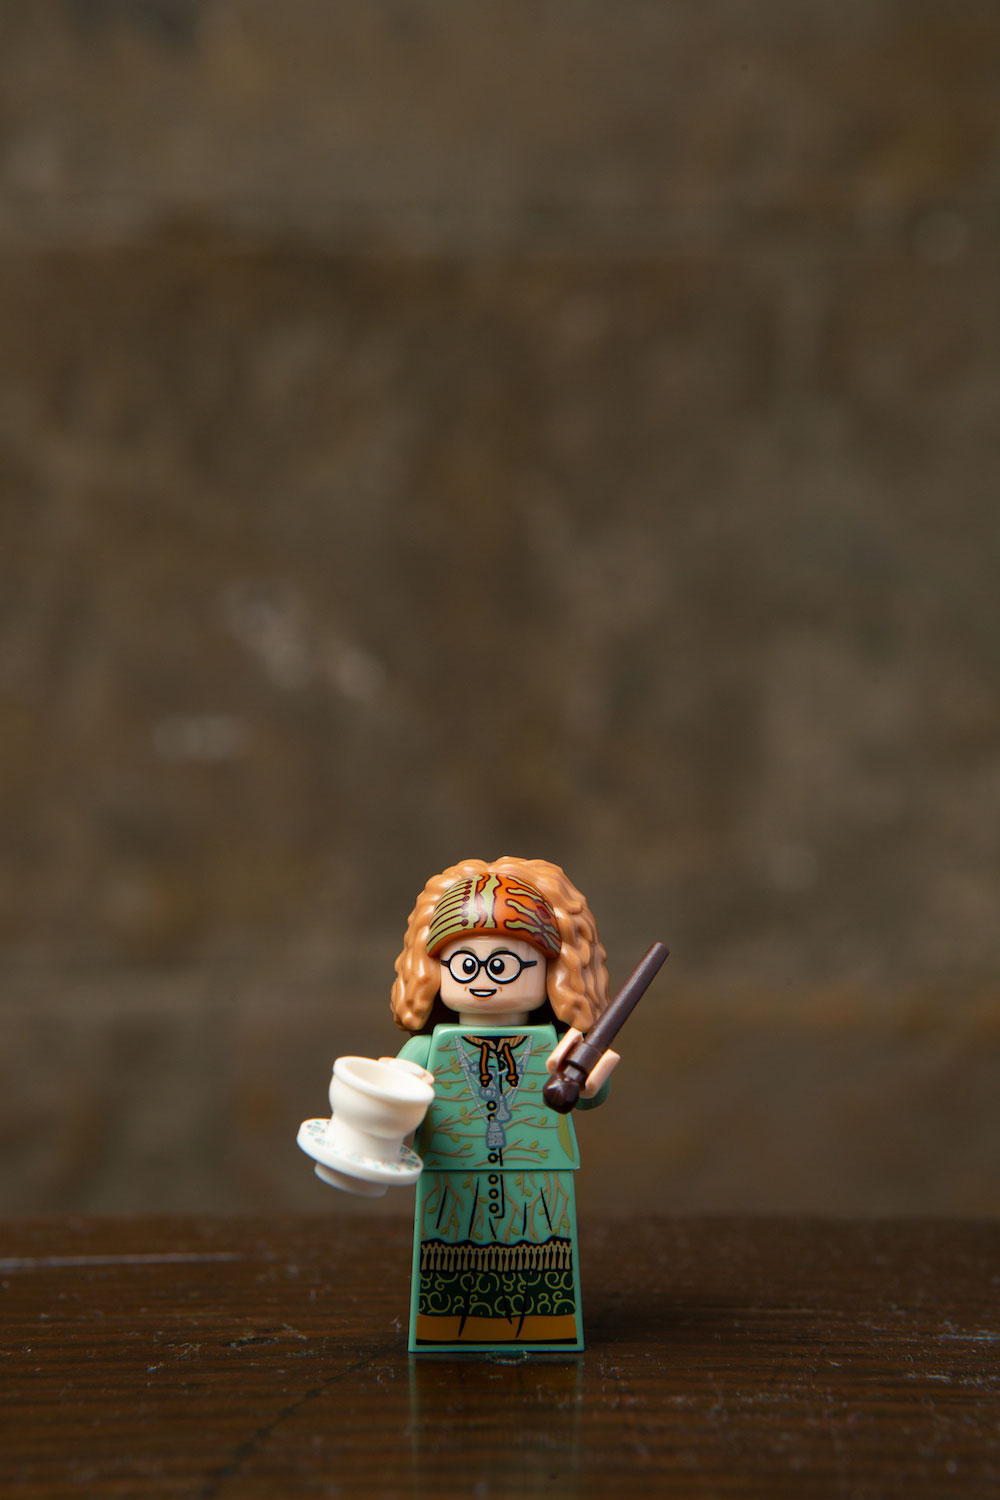 Trelawney and her teacup predict that you should collect all these amazing LEGO minifigures from the new wizarding world series.